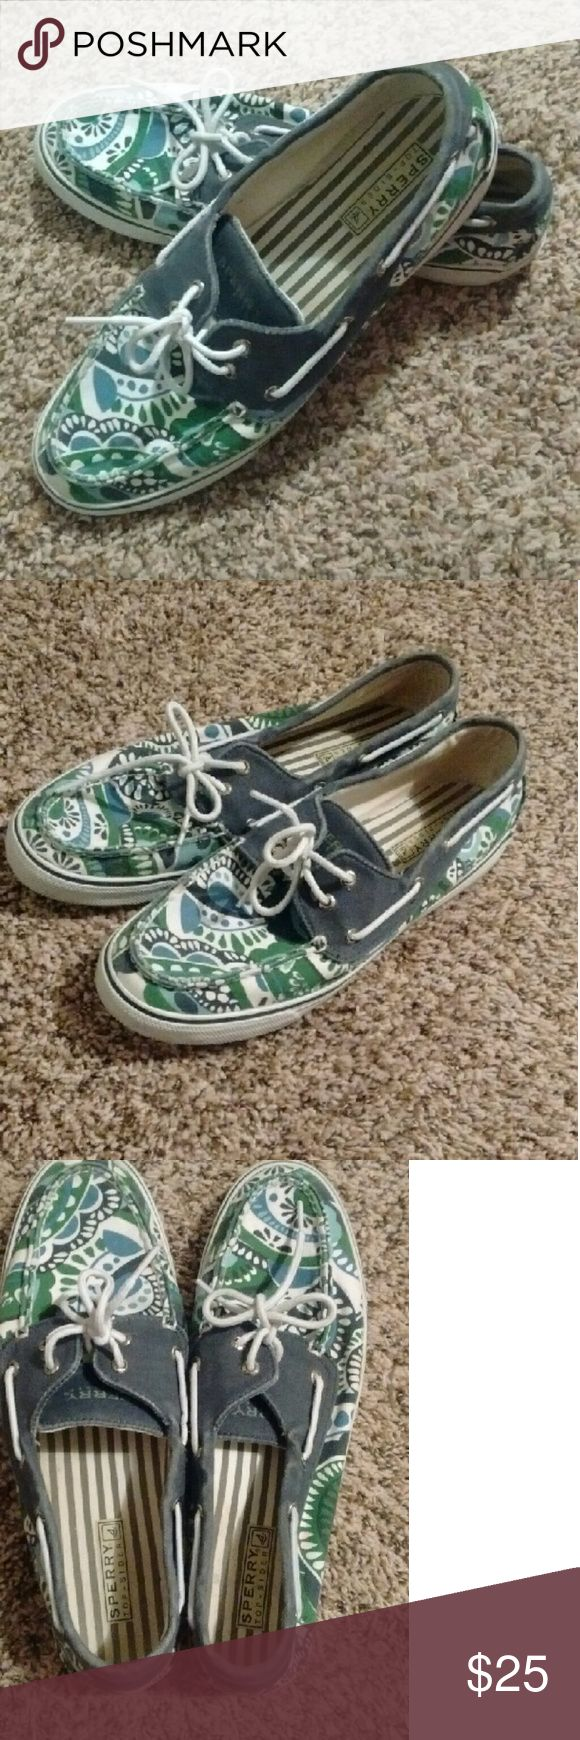 Colorful Sperry Top-Siders Blue, green & white Sperry Top-Siders. Women's size 11M Sperry Top-Sider Shoes